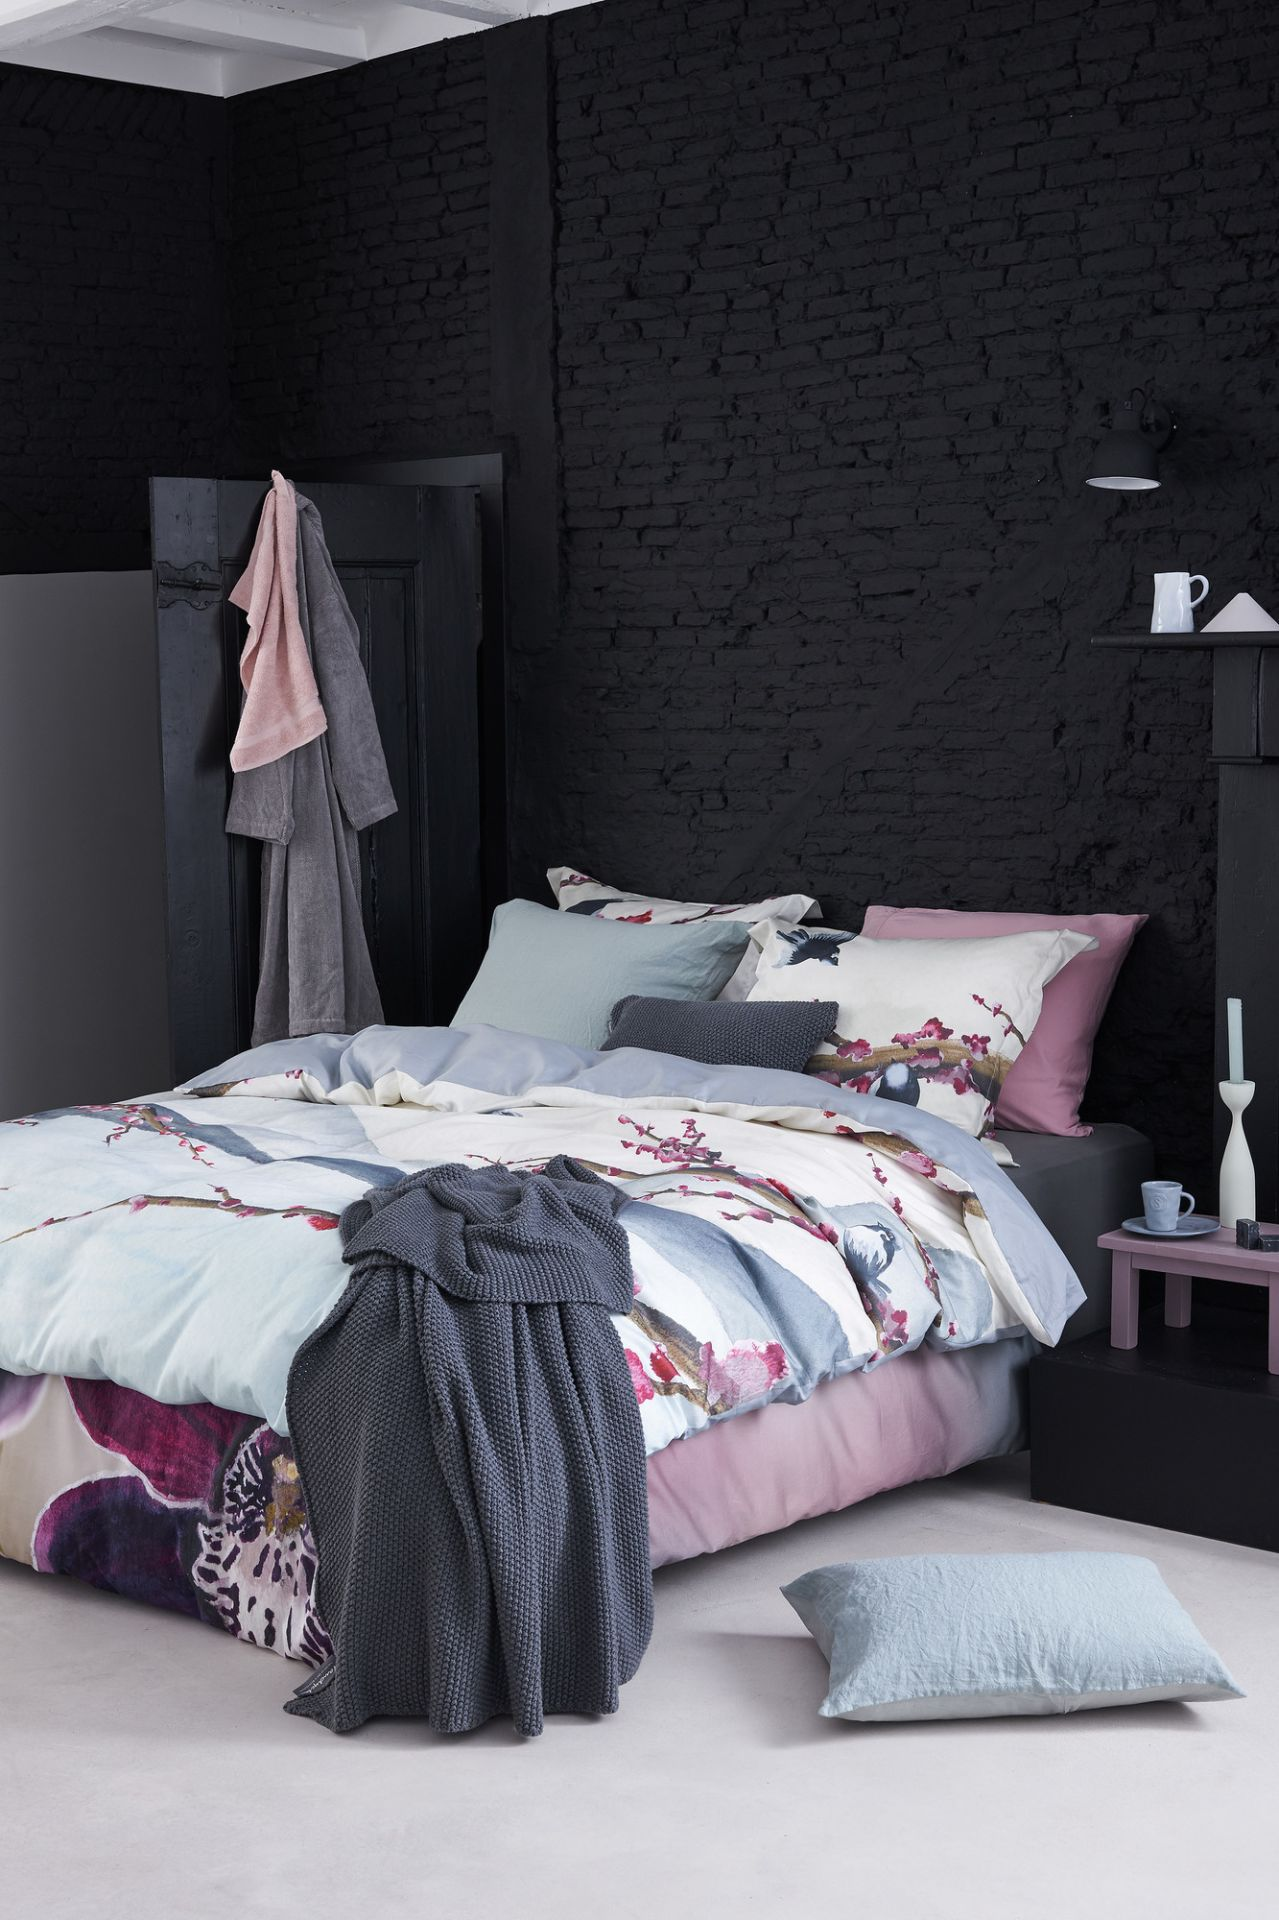 VanDyck bedtextiel Bright Orchid 000 Multi, Mountain Life 000 Multi, Purity 79 402 cel green, Home 60 001 Mole grey, Pure 7 144 sepia pink bij Slaapkenner Lisse in Lisse